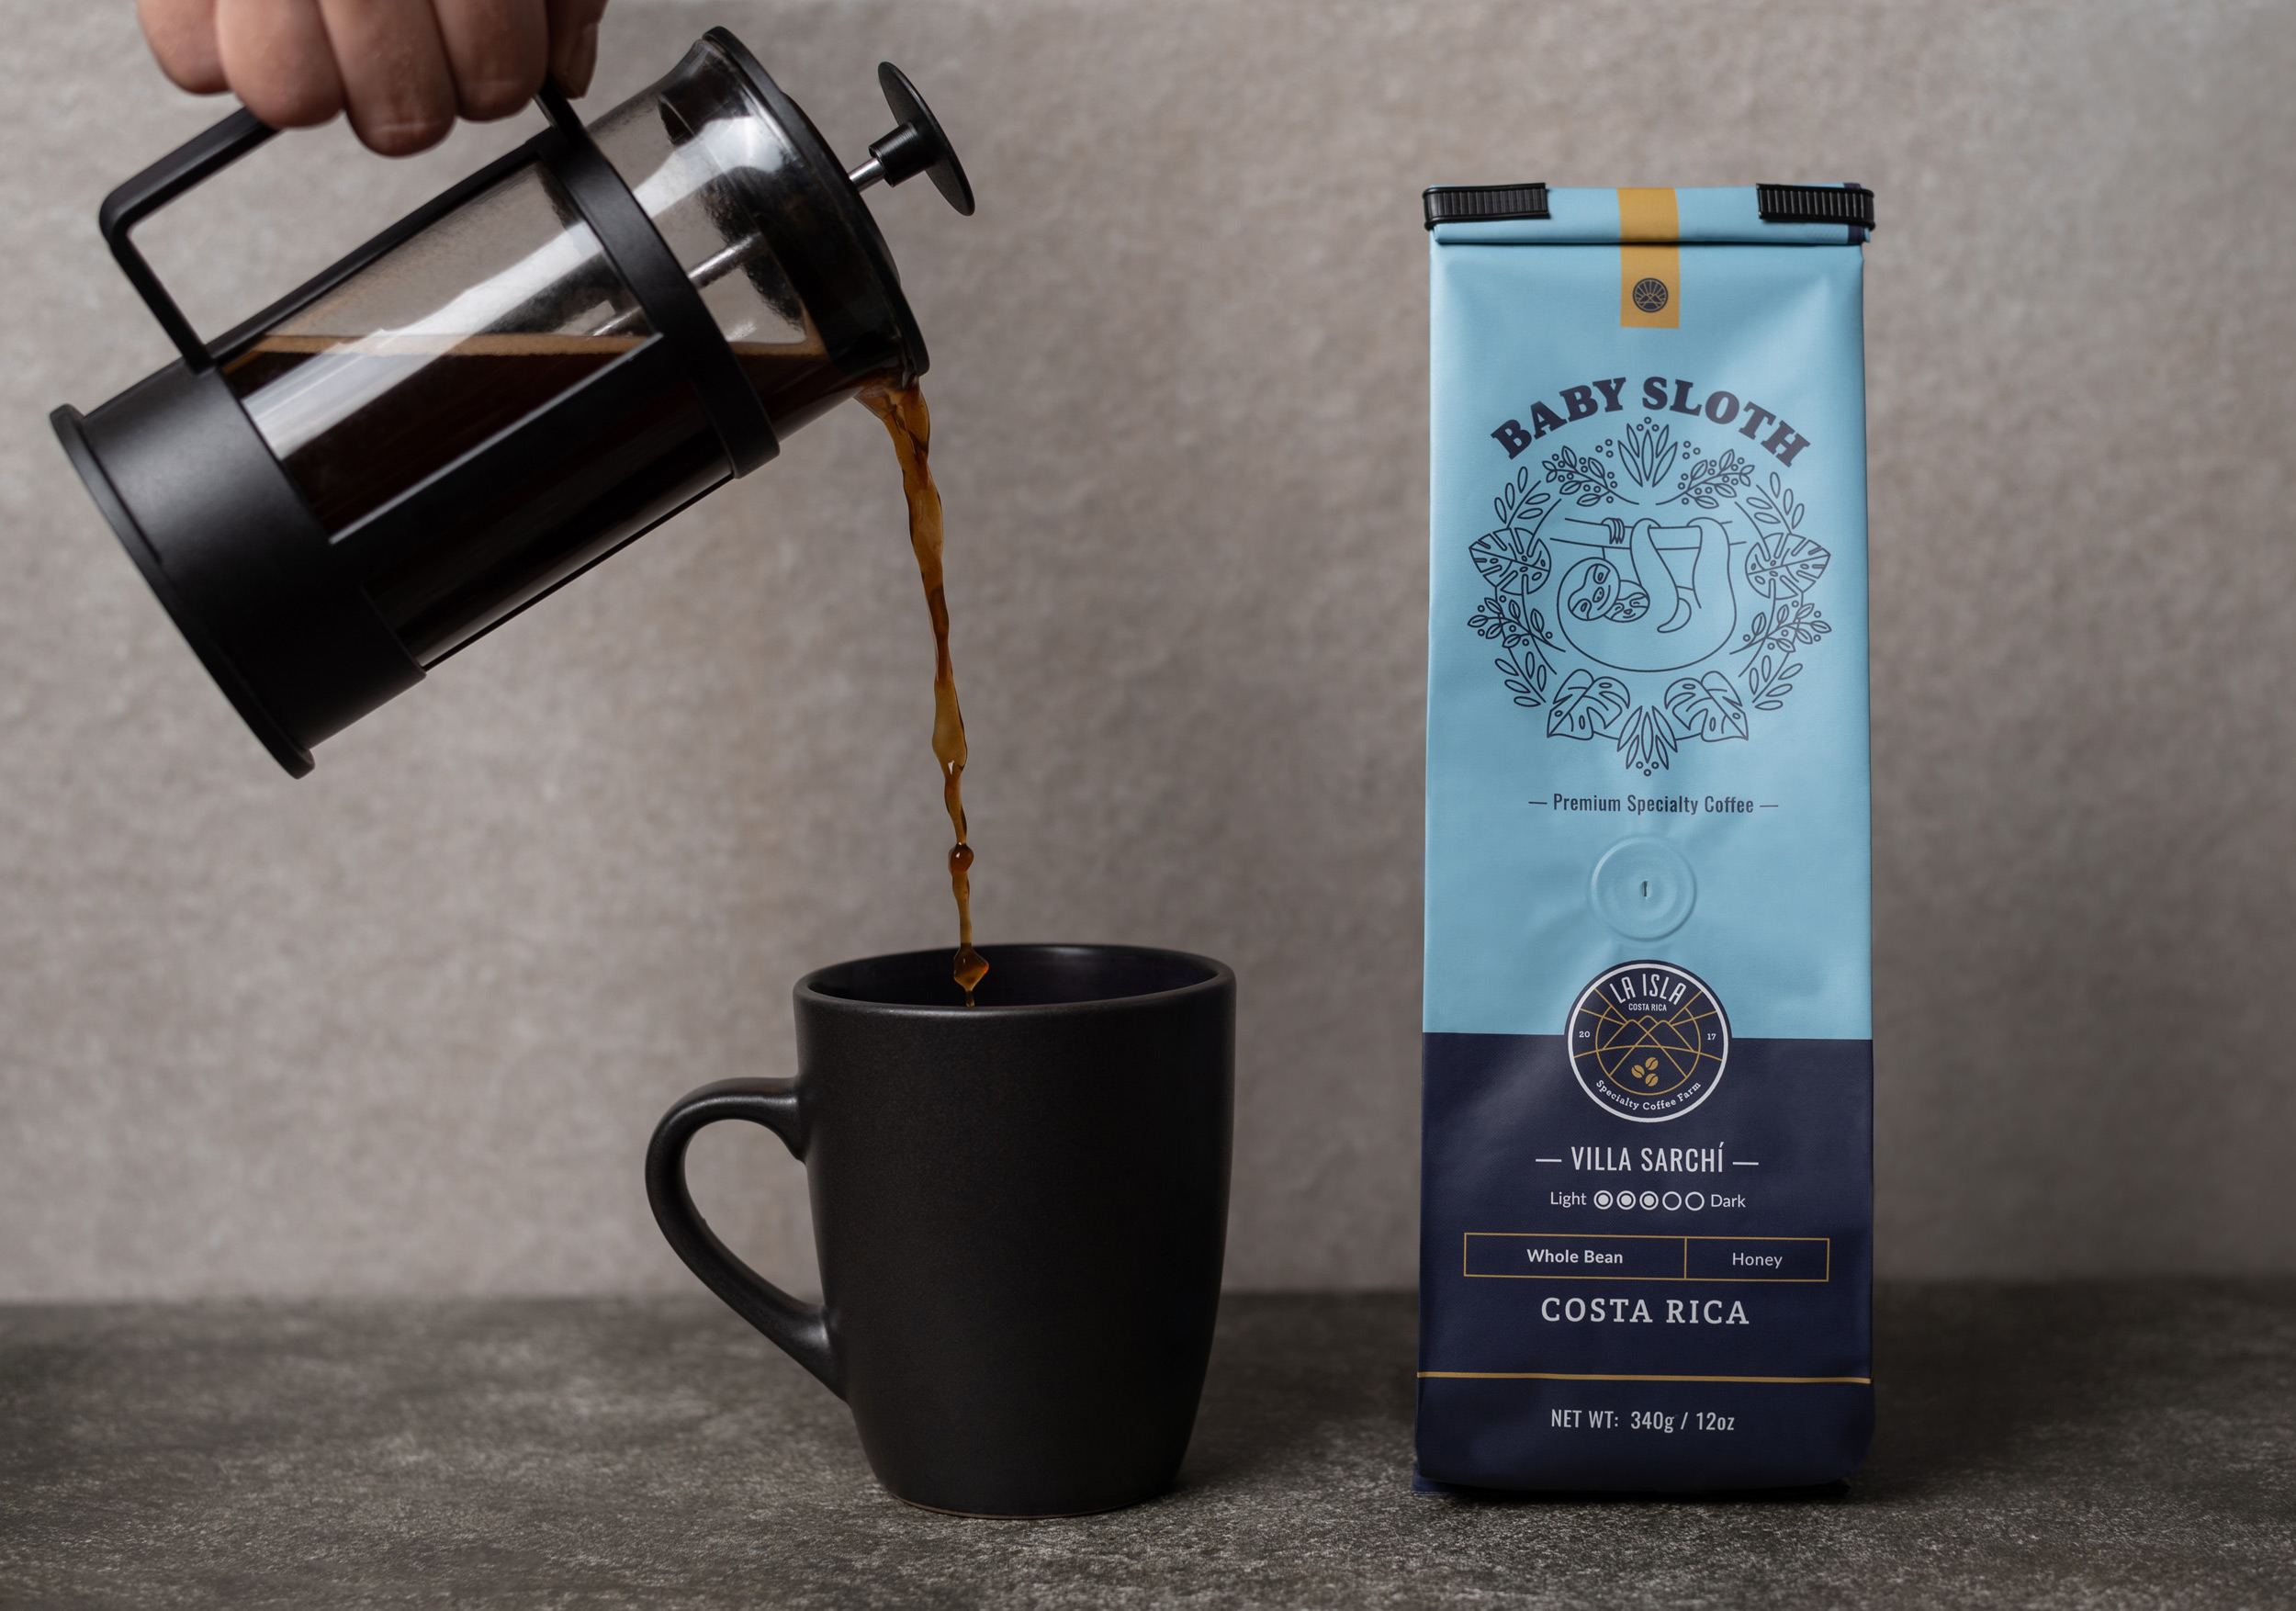 Packaging Design for Baby Sloth Coffee Brand Created by Design Etiquette